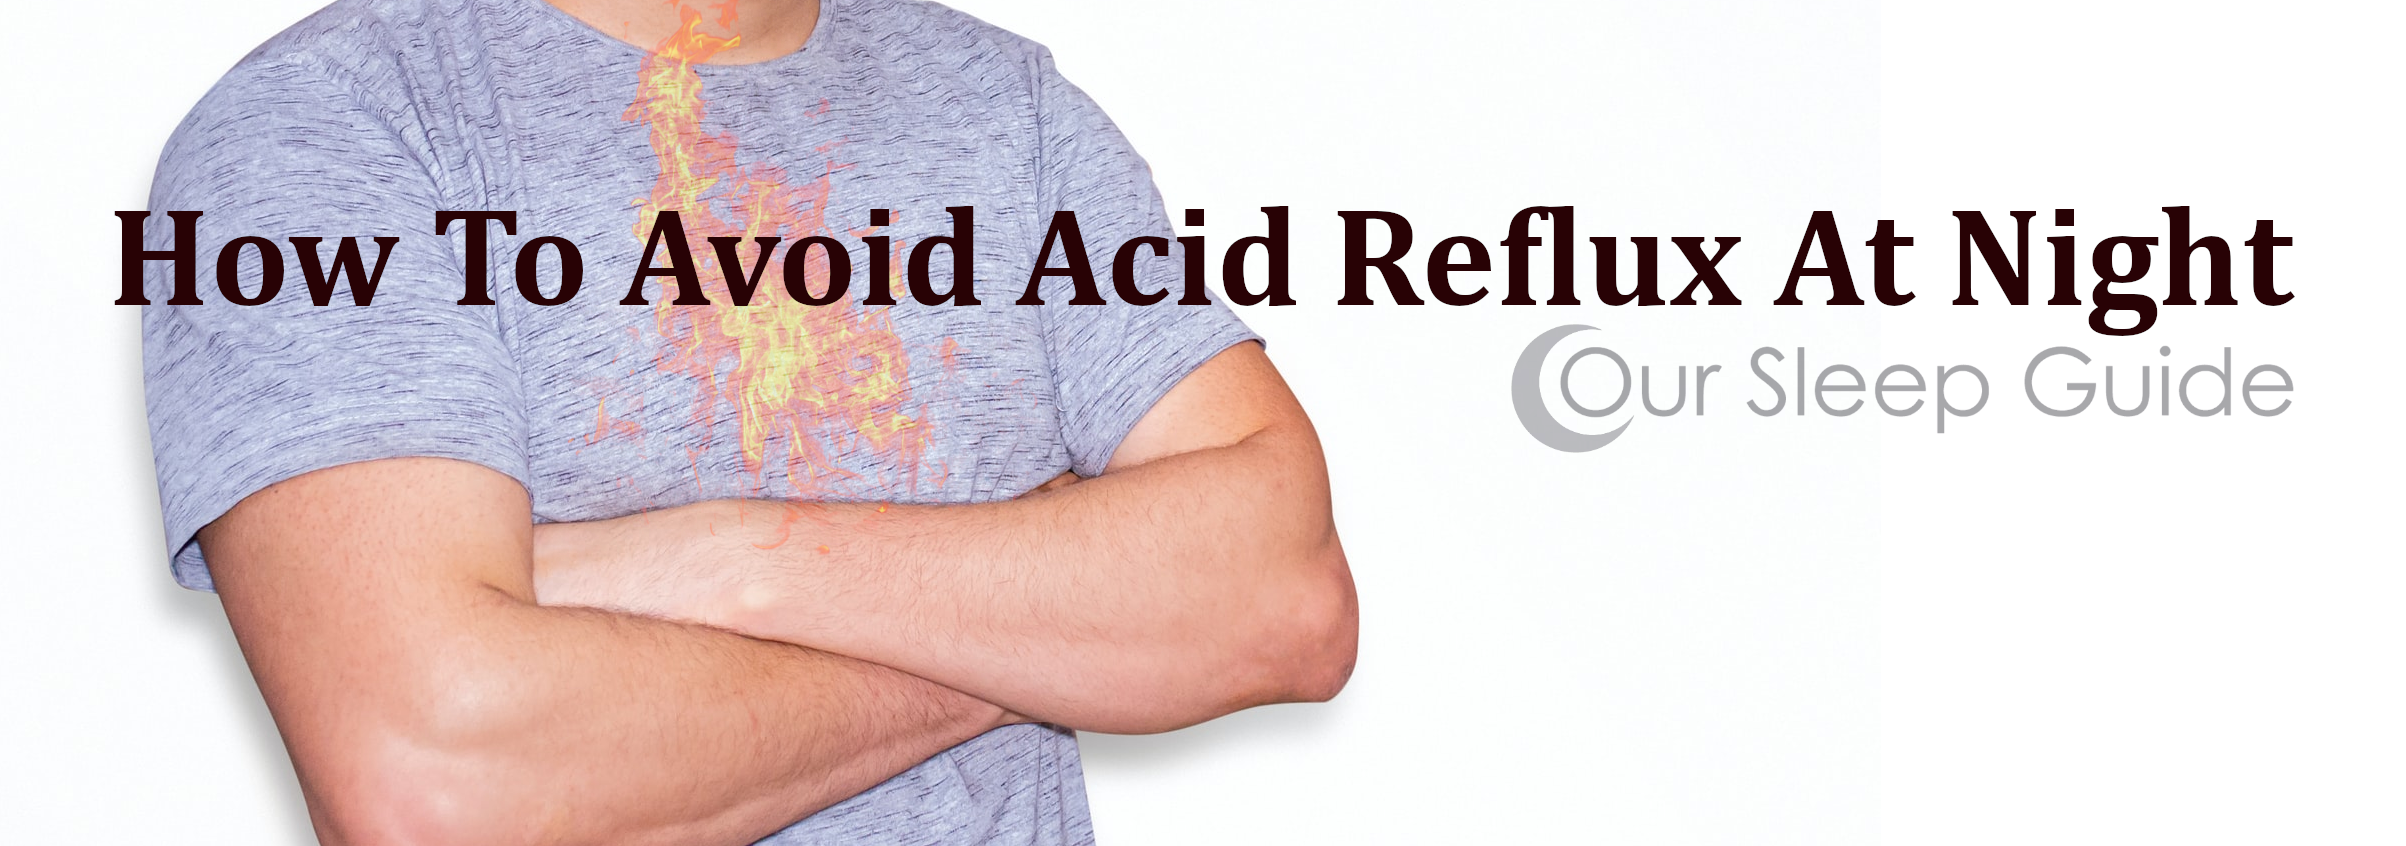 how to avoid acid reflux at night